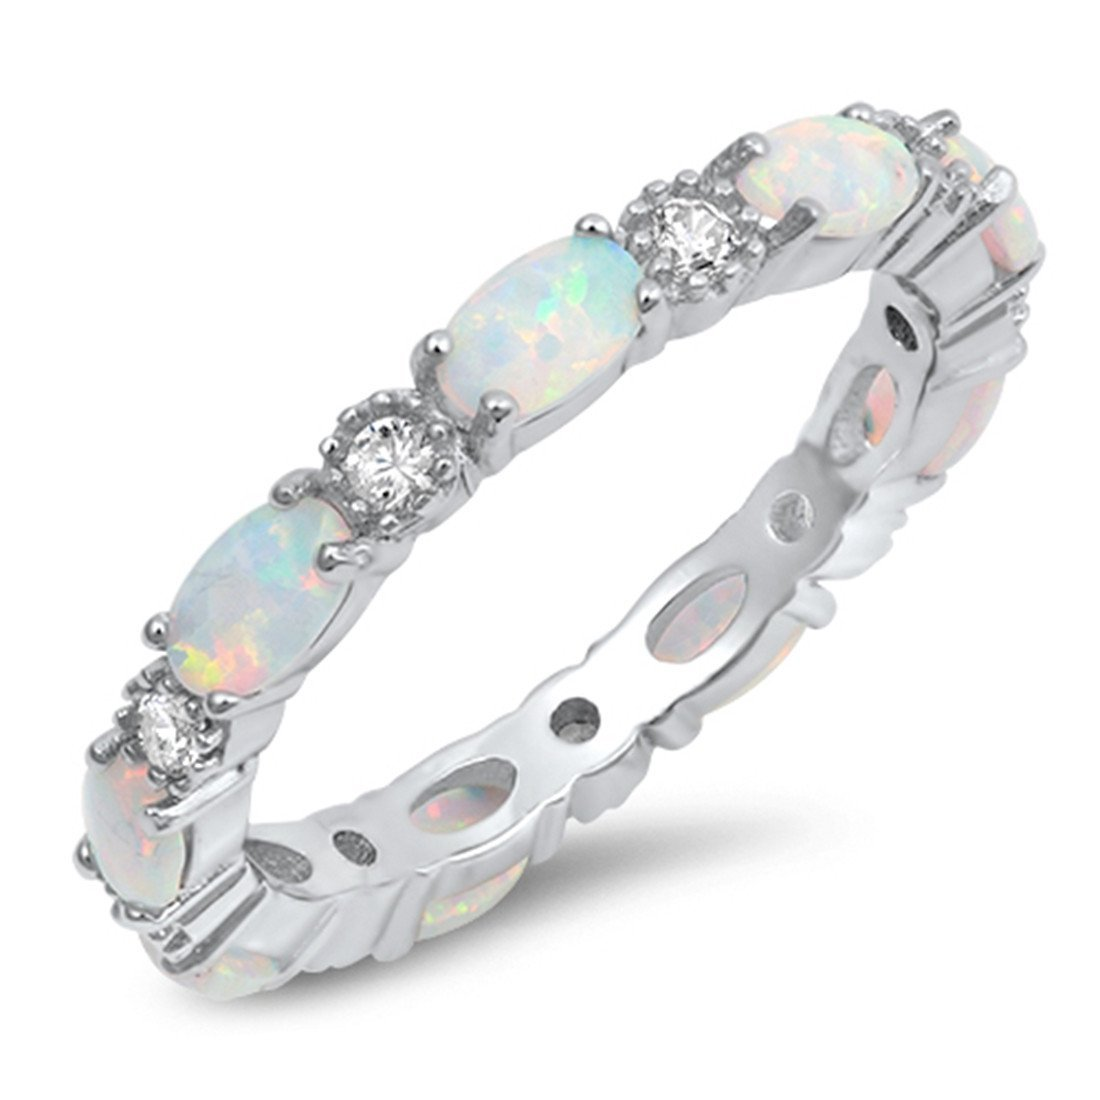 4mm Full Eternity Stackable Band Ring Oval Created White Opal Round CZ 925 Sterling Silver, Size-7